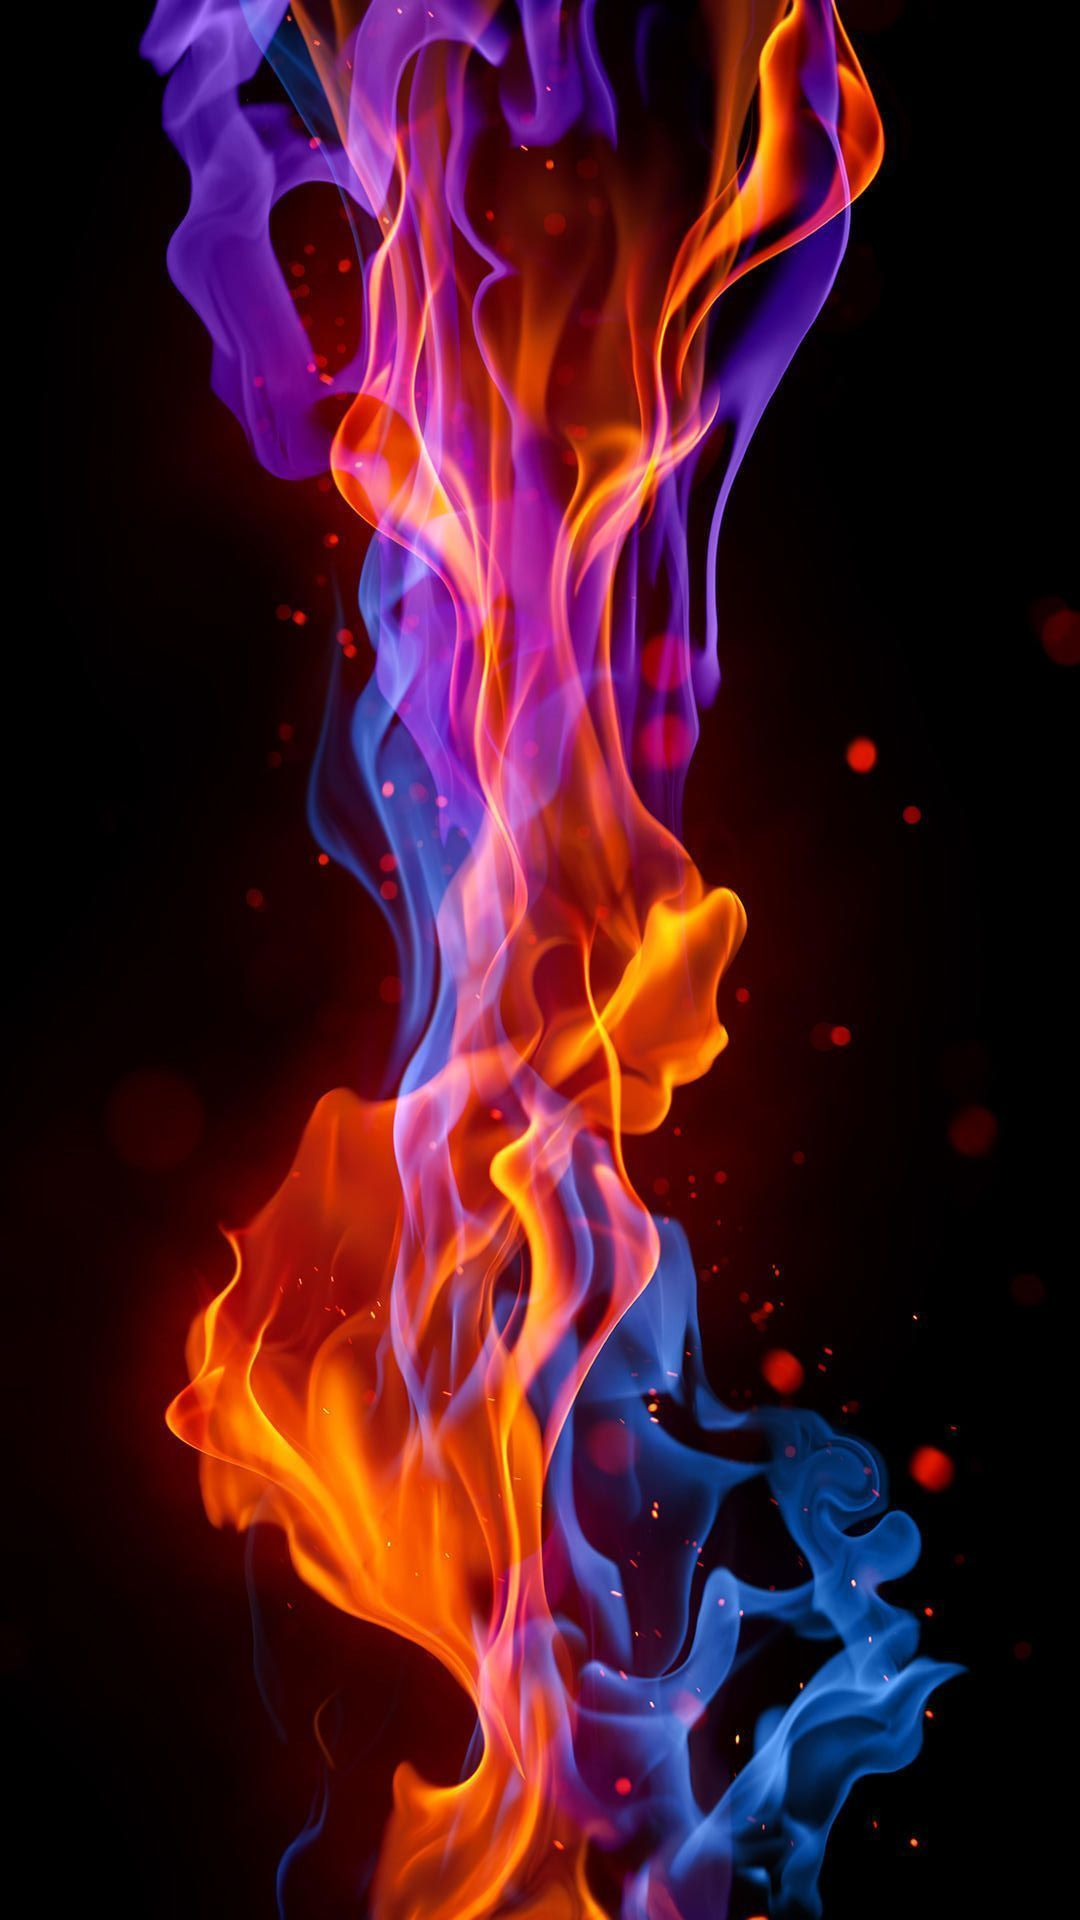 Fire Android Iphone Desktop Hd Backgrounds Wallpapers 1080p 4k 112779 Hdwallpapers Android Best Iphone Wallpapers Flame Art Live Wallpaper Iphone